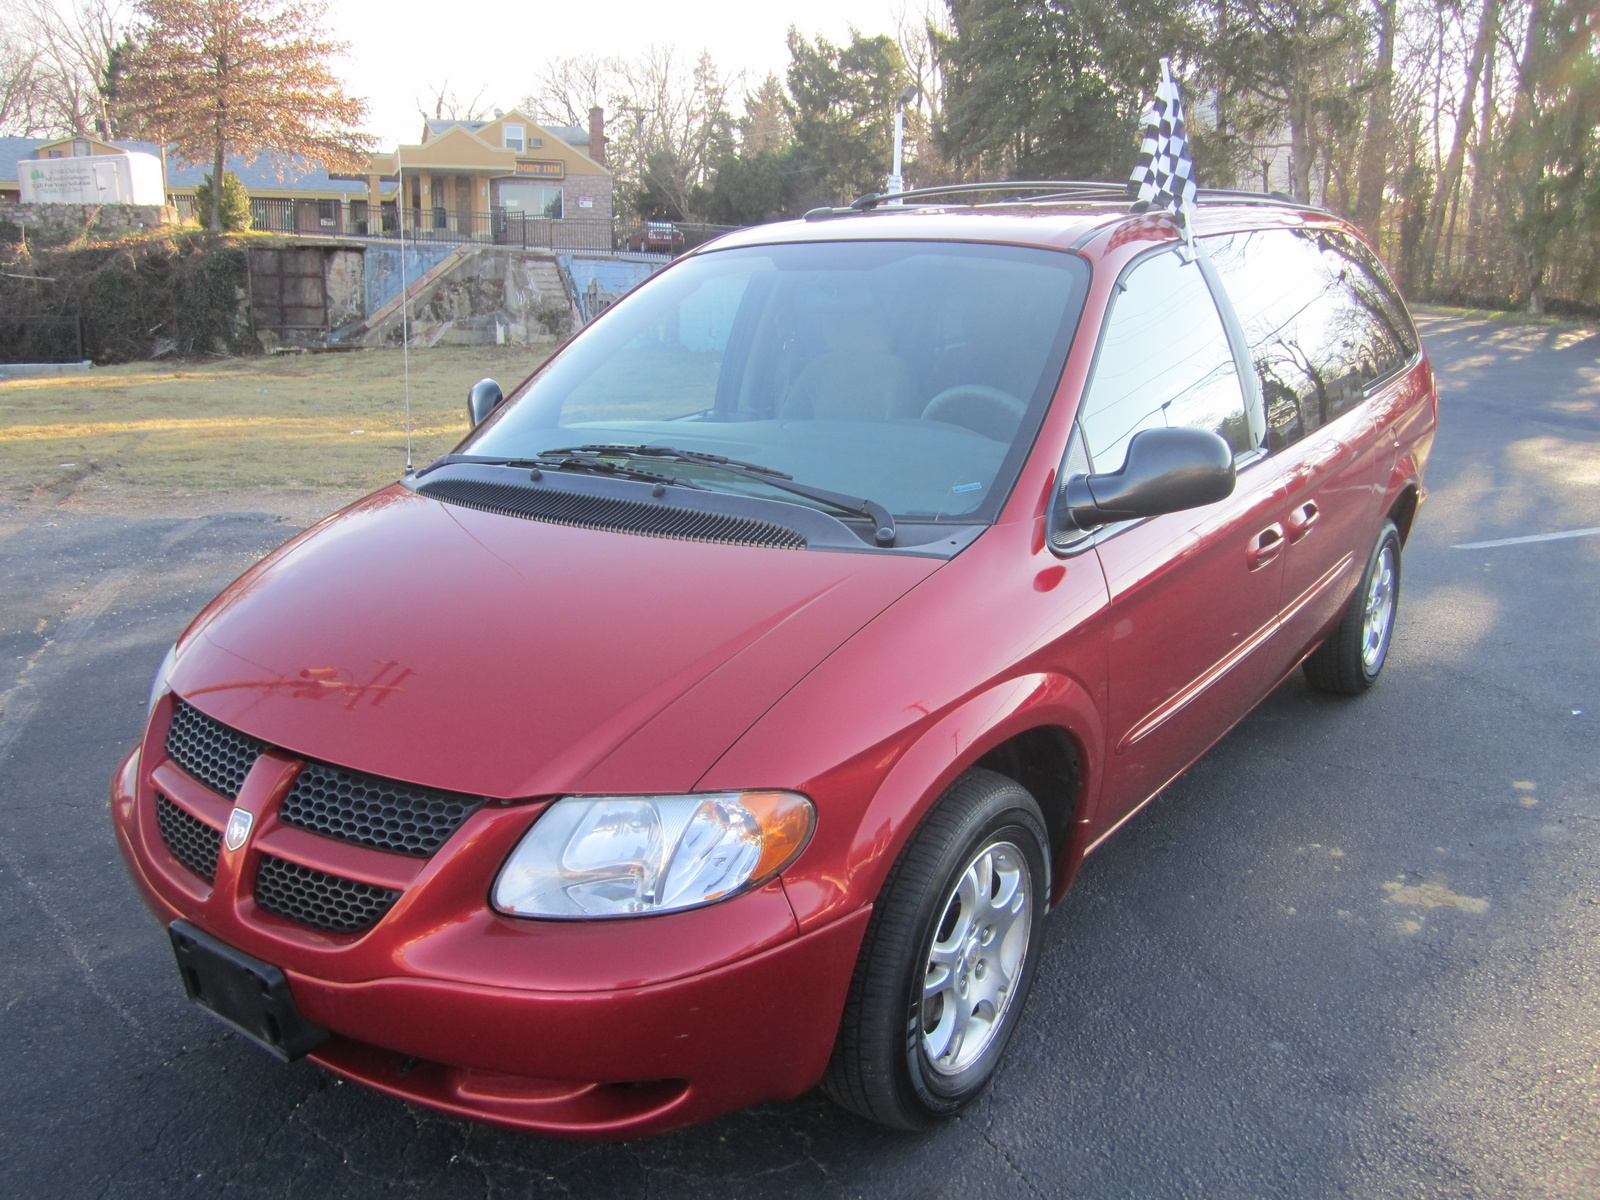 2003 dodge grand caravan 4 dr ex passenger van extended picture of. Cars Review. Best American Auto & Cars Review